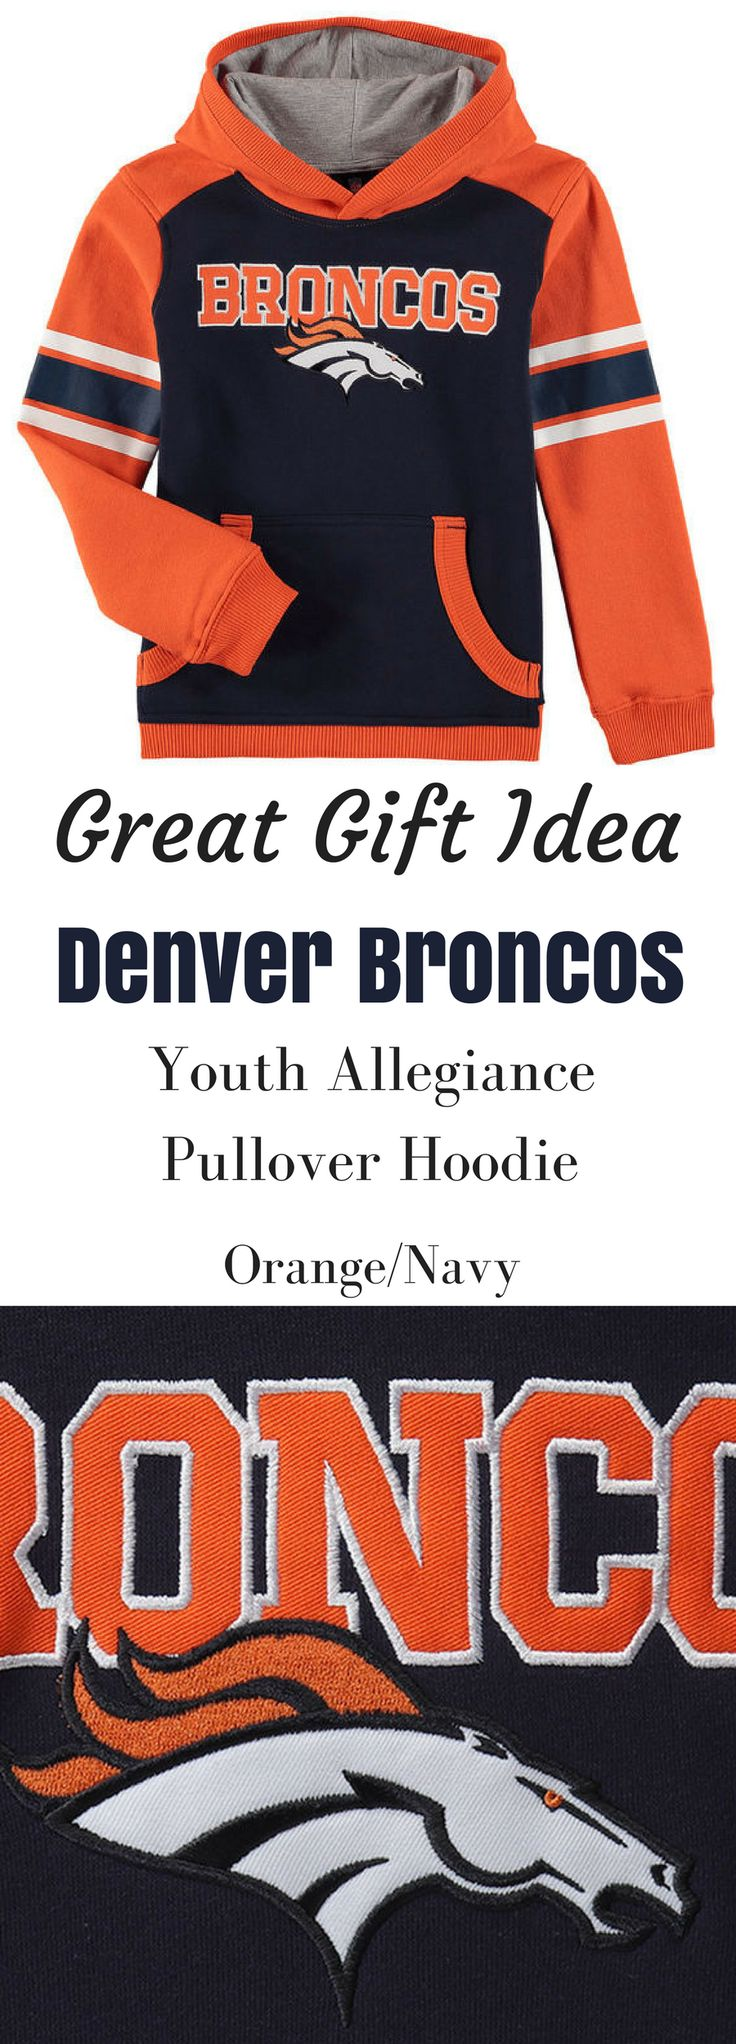 WOW I bet my son would love to have this Denver Broncos Pullover Hoodie! He could show off his Denver Broncos enthusiasm with this classic Fan Gear Allegiance pullover hoodie. He'll feel like a part of the team thanks to the bold Denver Broncos graphics decorating this sweet top! NNT #Afflink #broncos #football #denver #DenverBroncos #coloradolife #christmasgifts #hoodiessweatshirtsformen  #christmasgiftsideas #PULLOVER #sweatshirts #gift #giftideas #GIFTIDEA #birthdaygifts denver broncos…